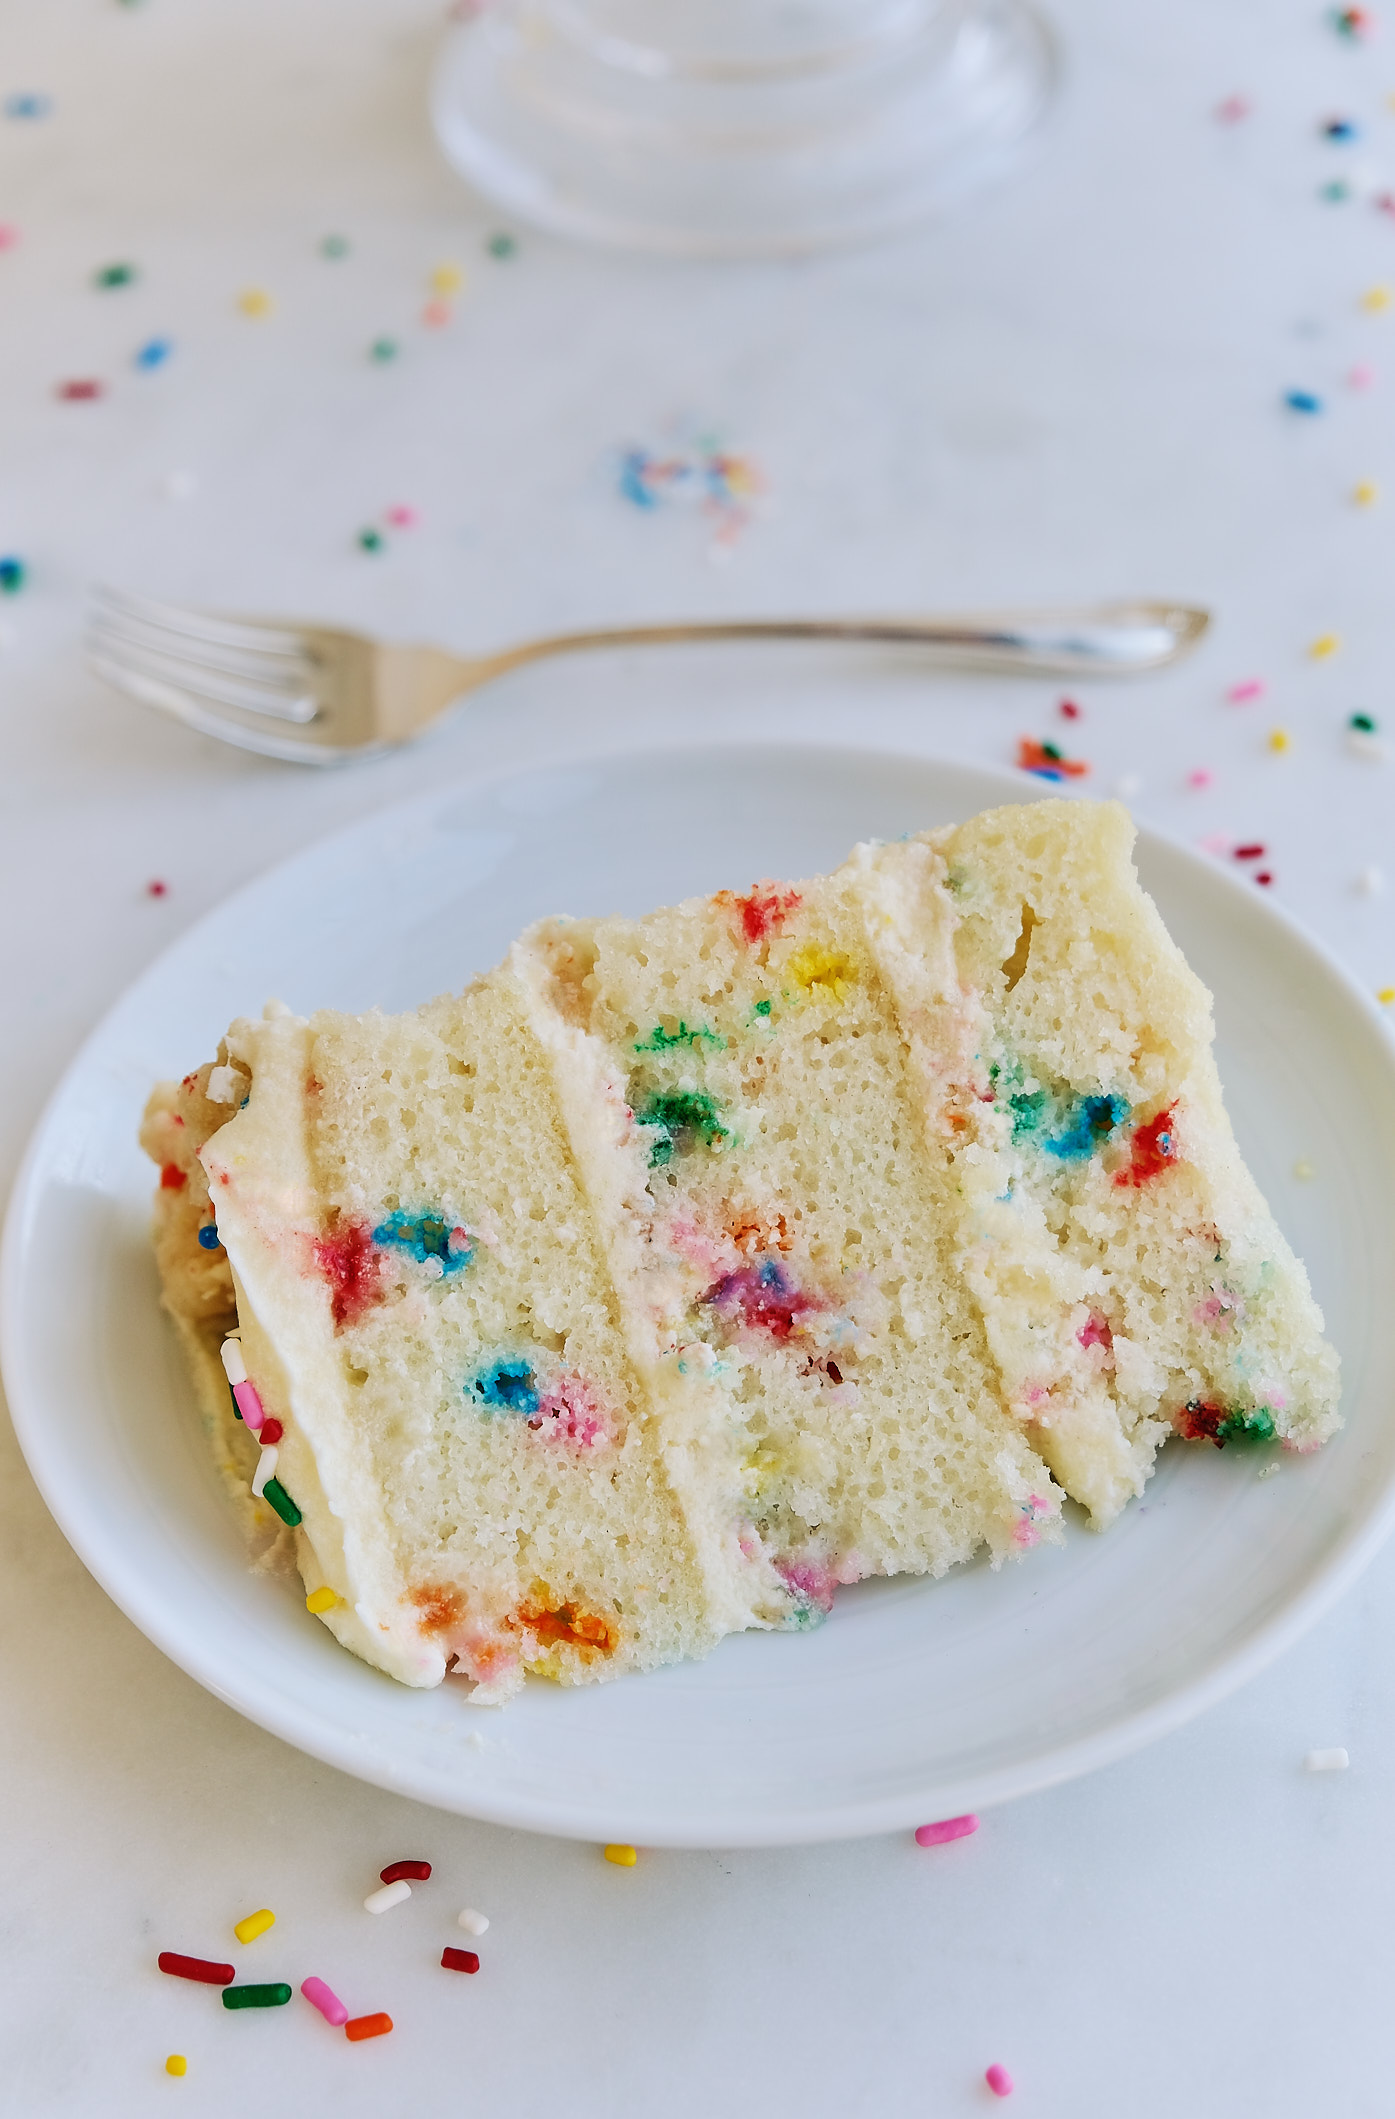 A slice of dairy-free egg-free Milk Bar Birthday Cake on a plate with a fork.